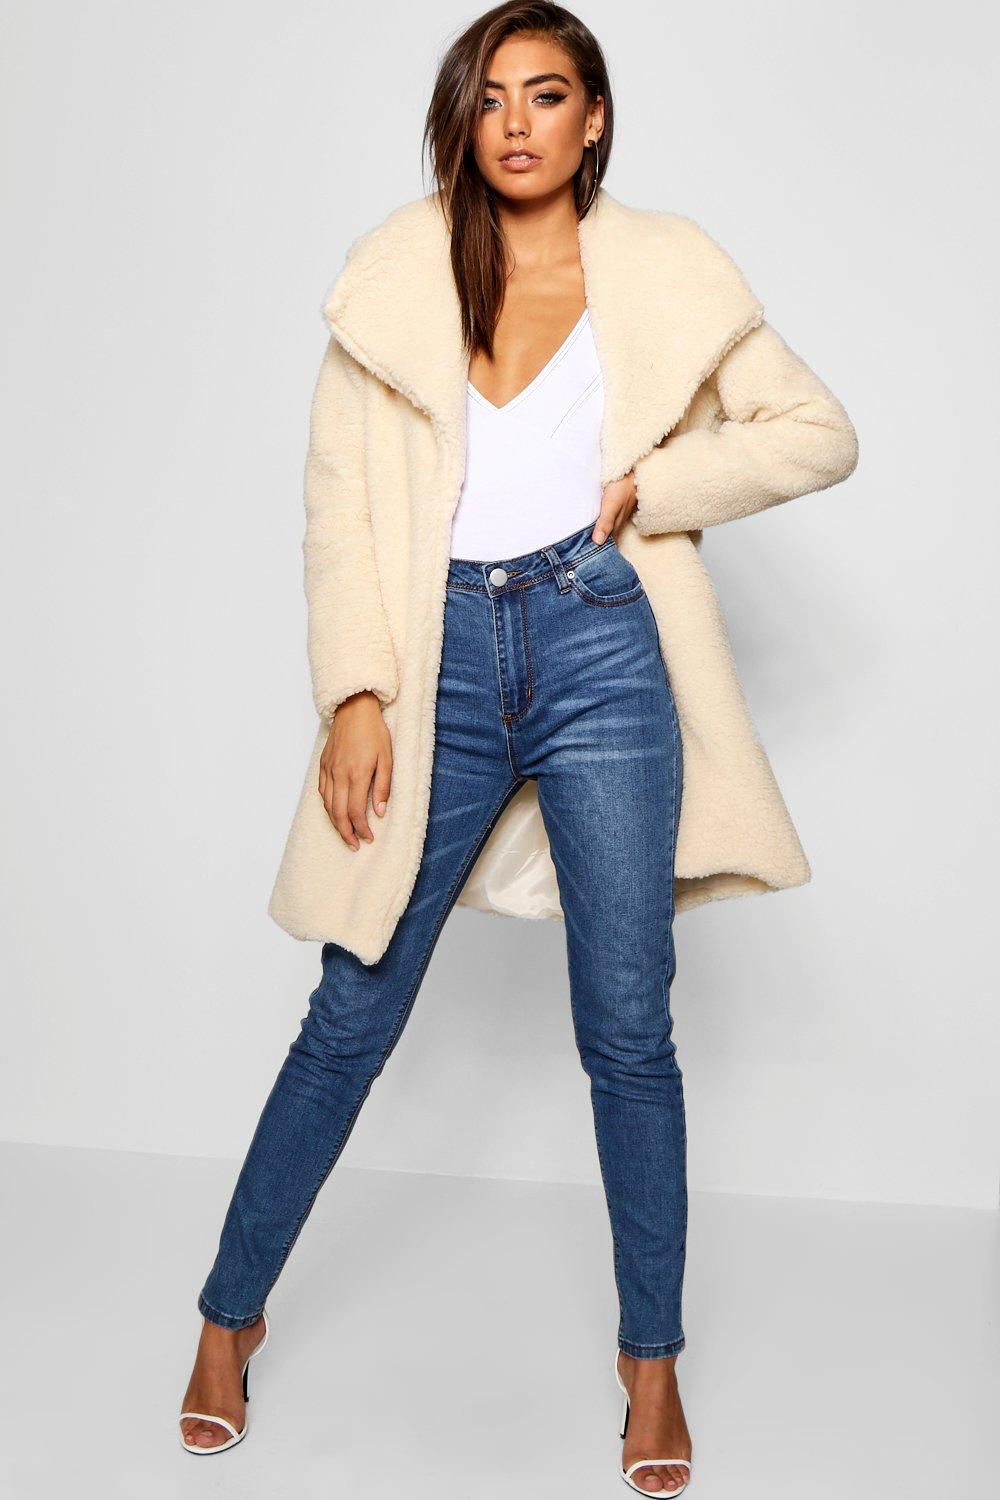 boohoo Womens Shawl Collar Teddy Faux Fur Jacket - White - L, White